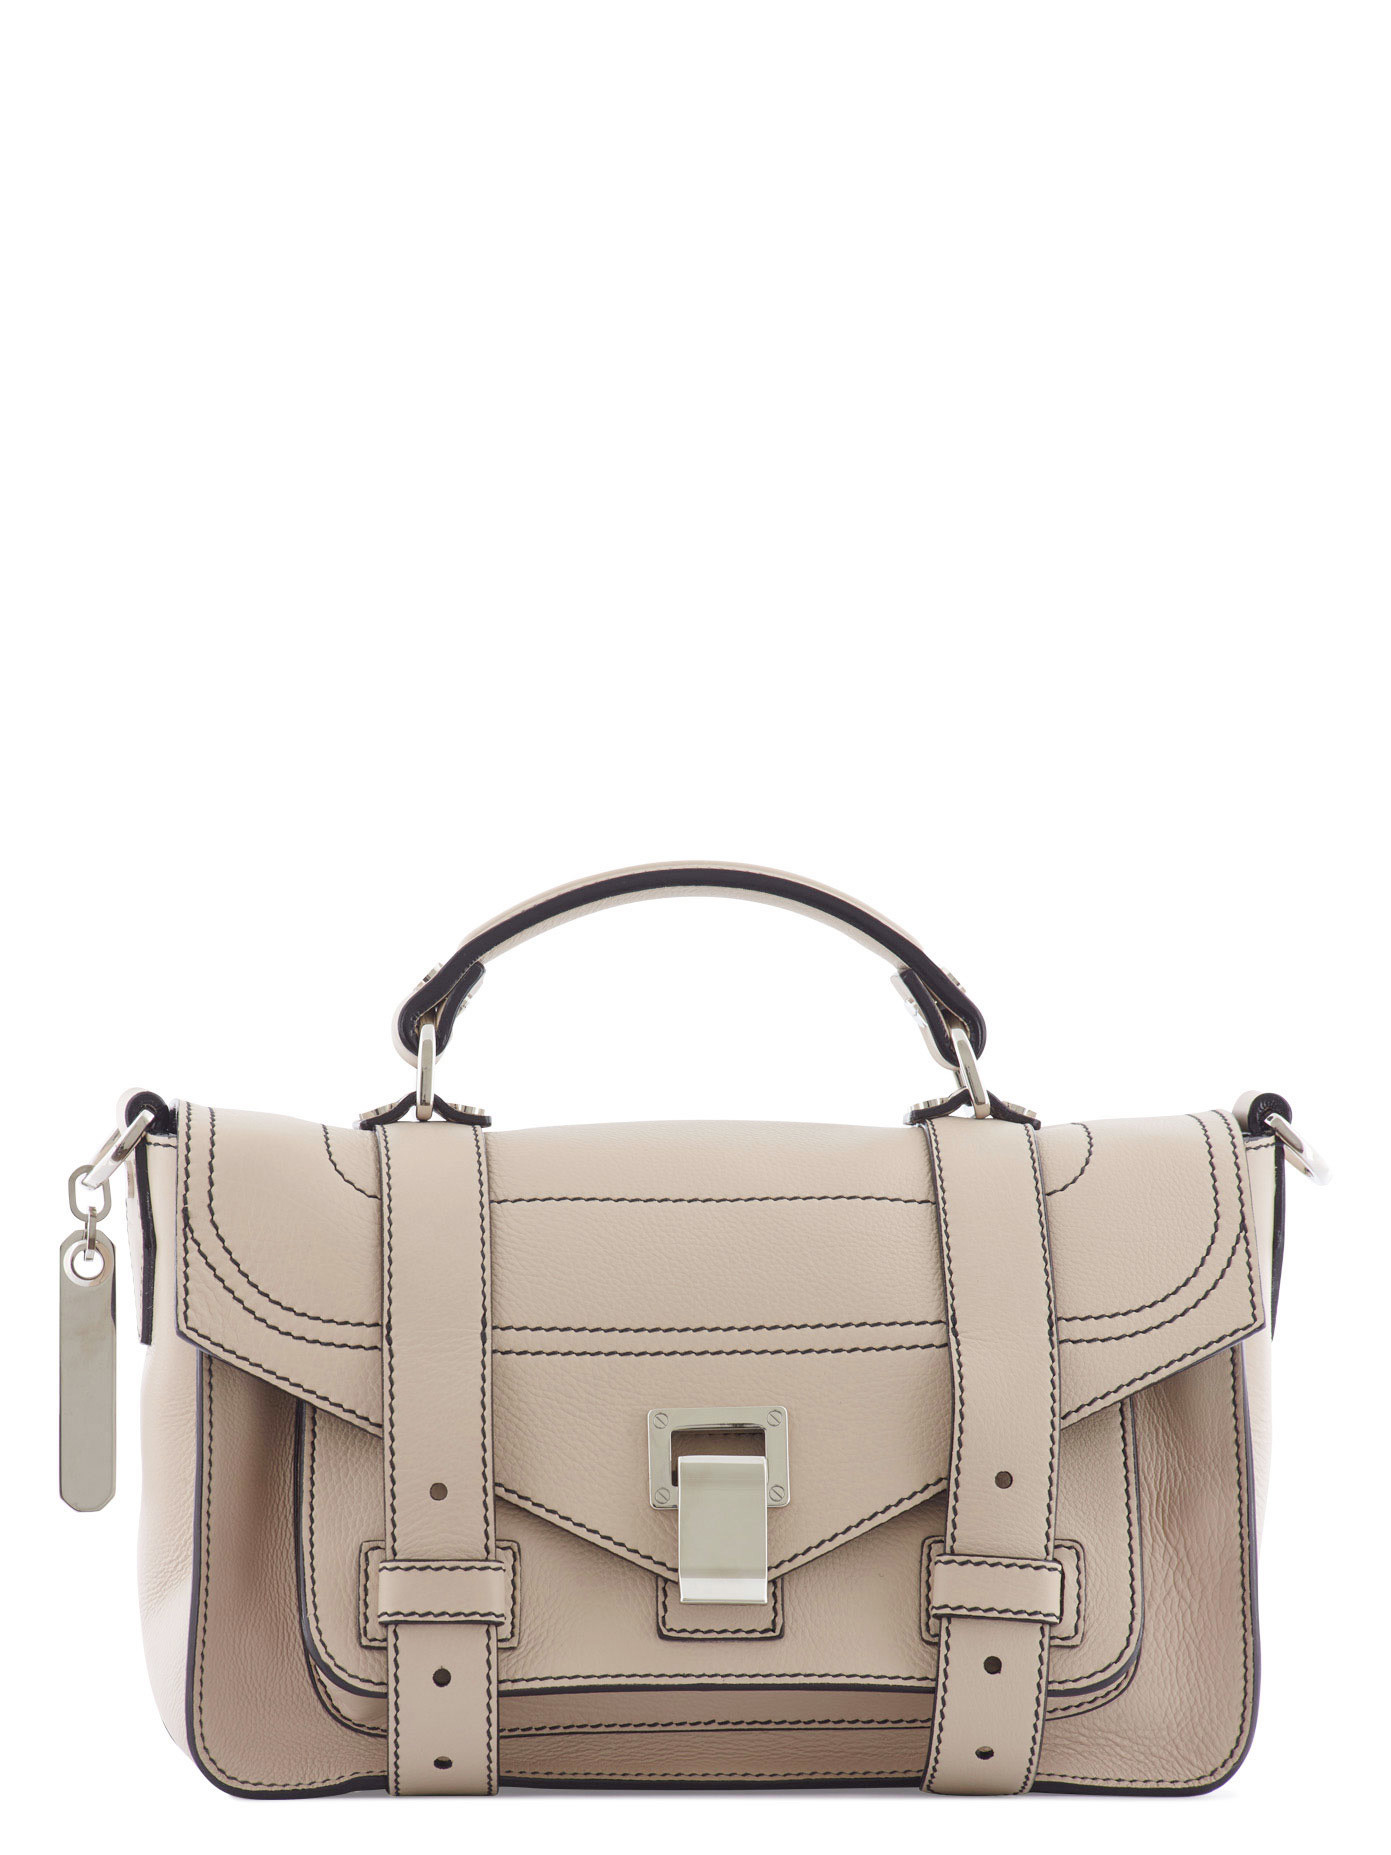 Proenza Schouler Ps1 Medium Saddle | Ps1 Medium Bag | Ps1 Bag